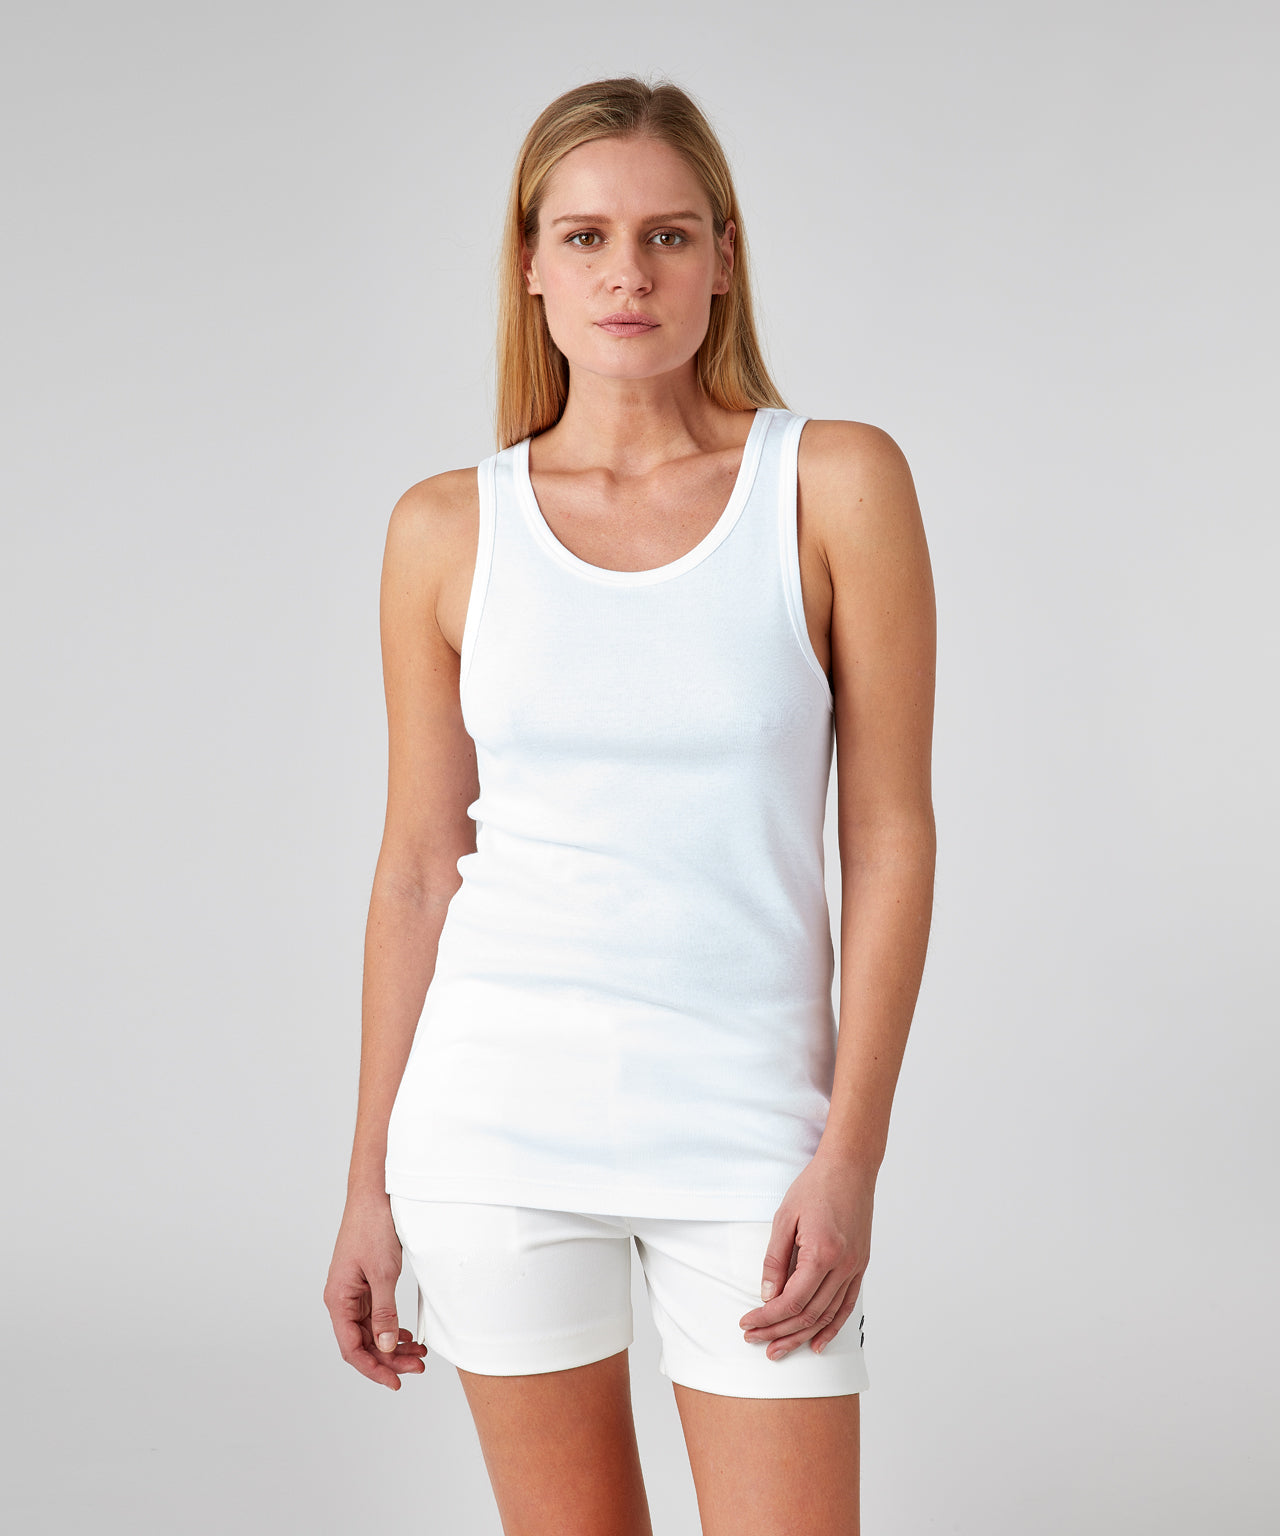 Underwear Tank Top His For Her - white